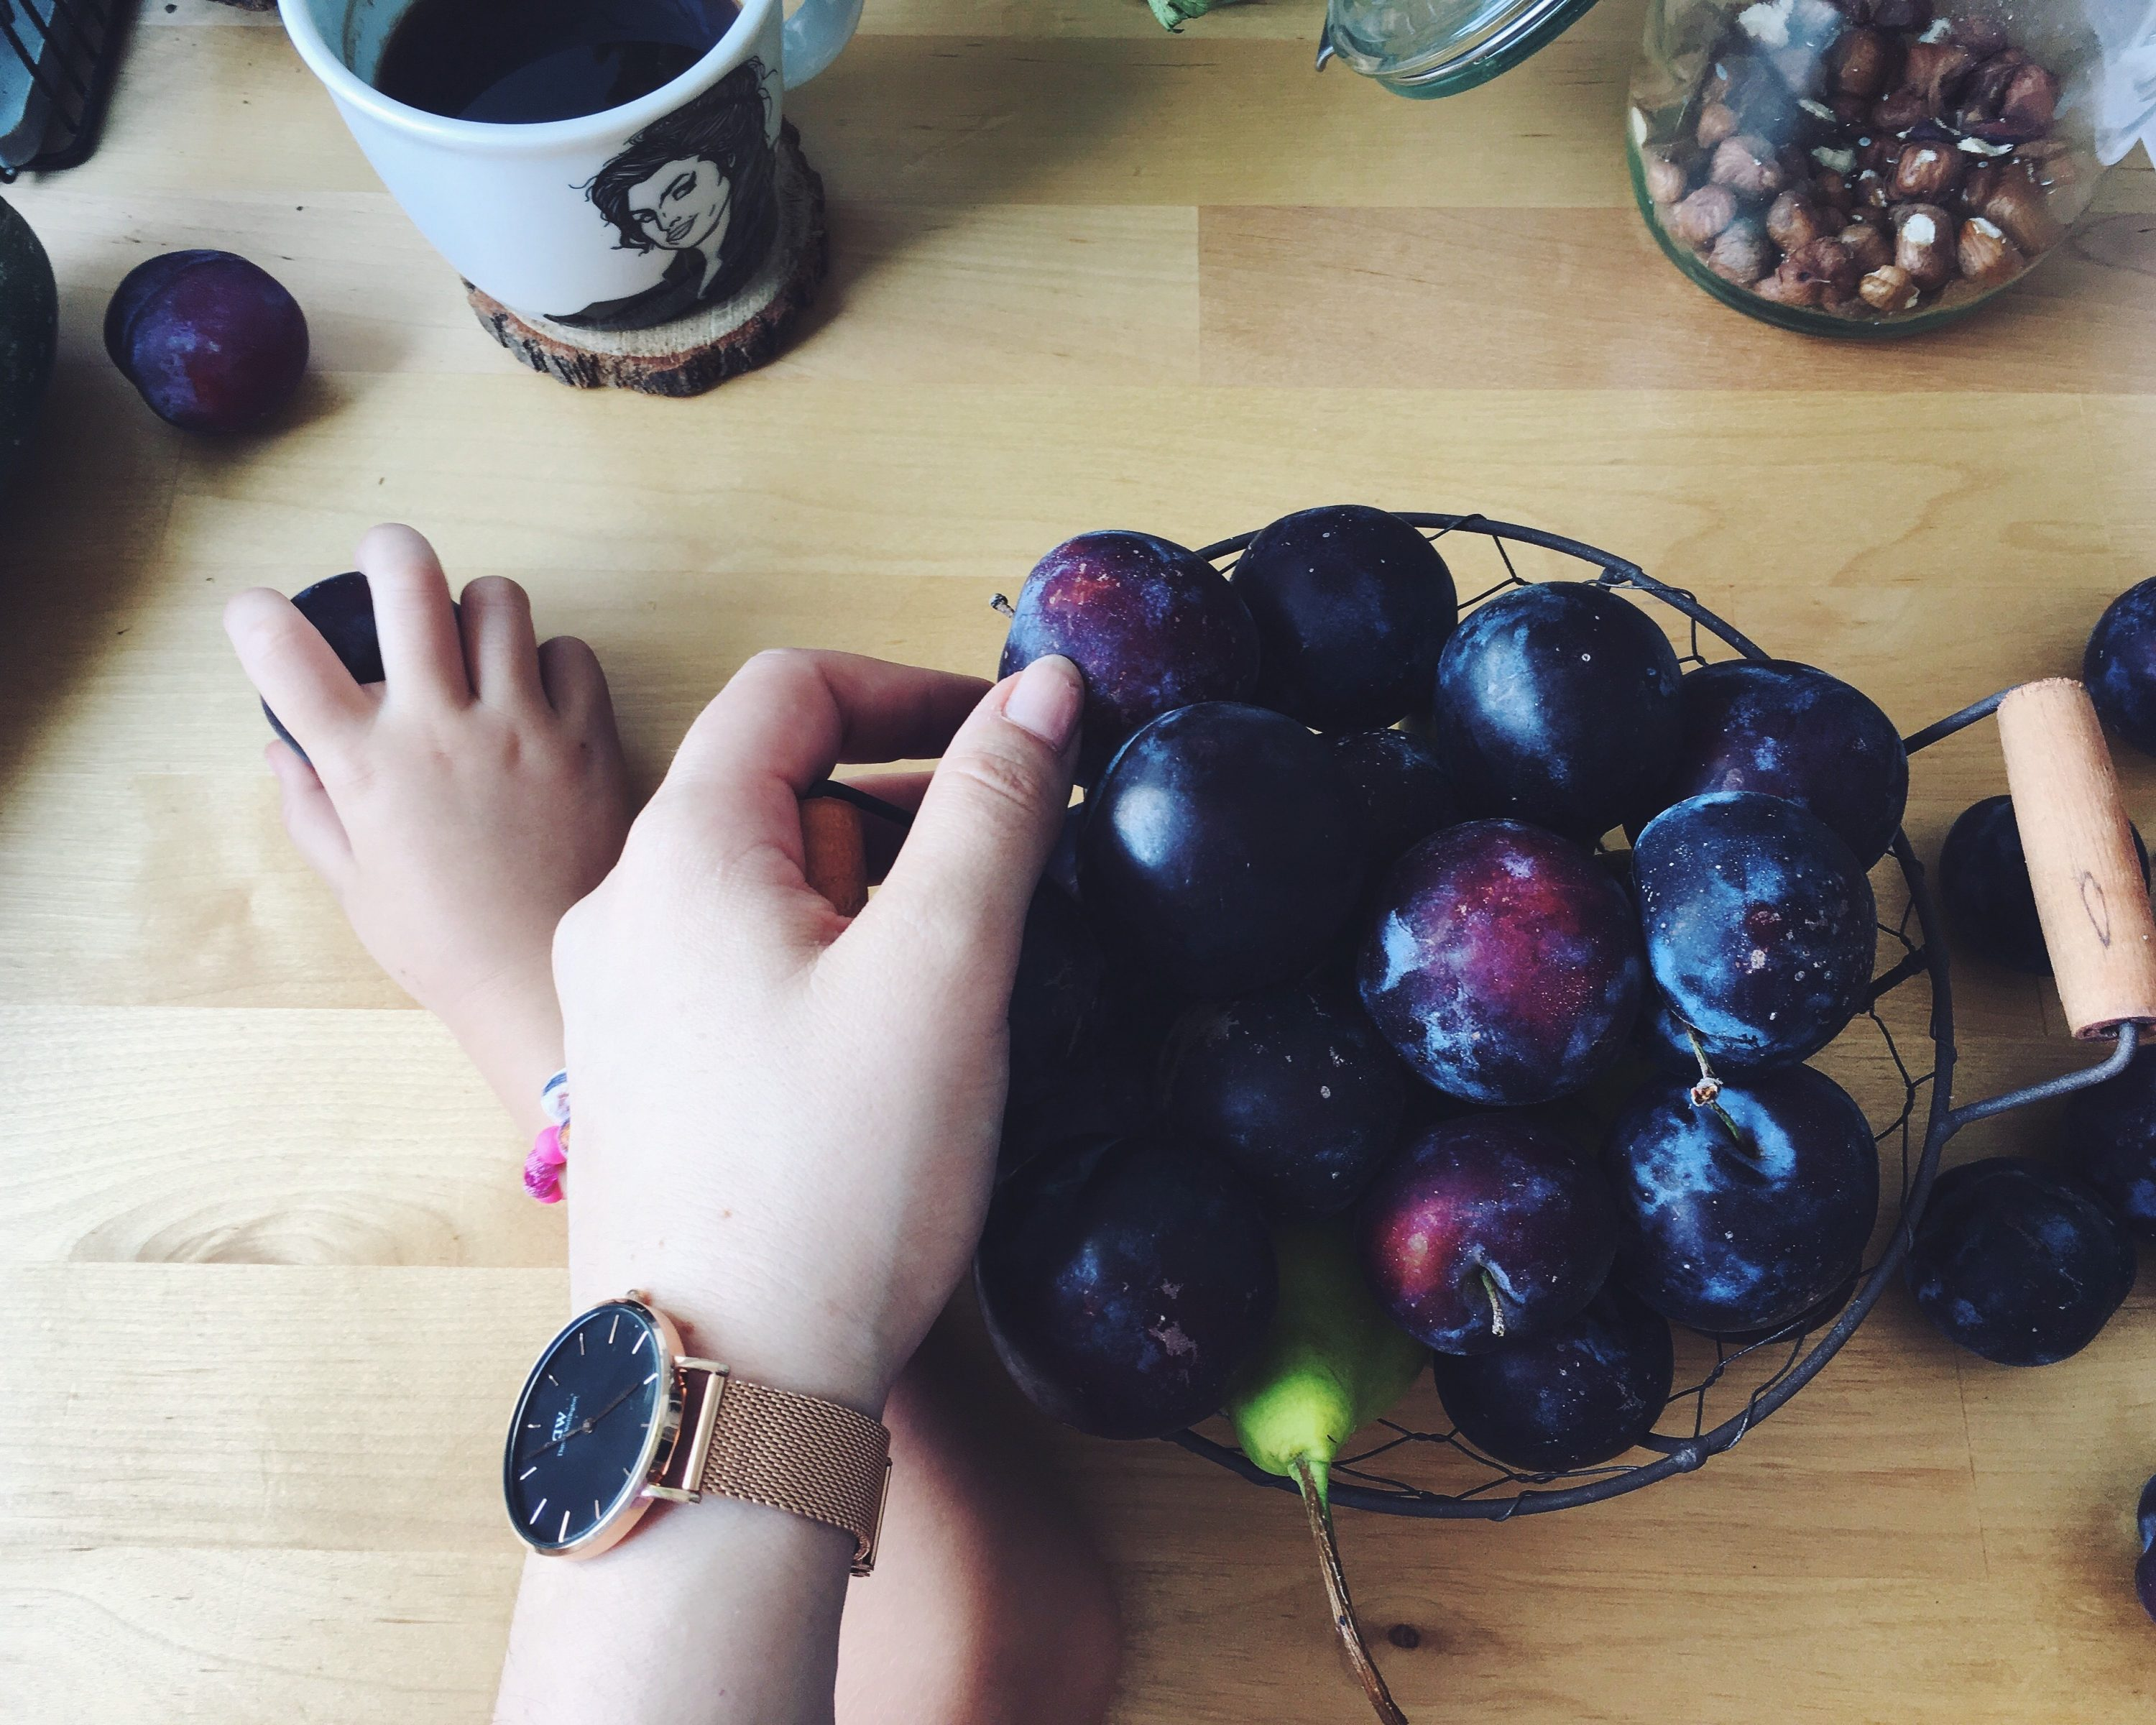 daniel wellington watch plums polona polona kitchen on the table